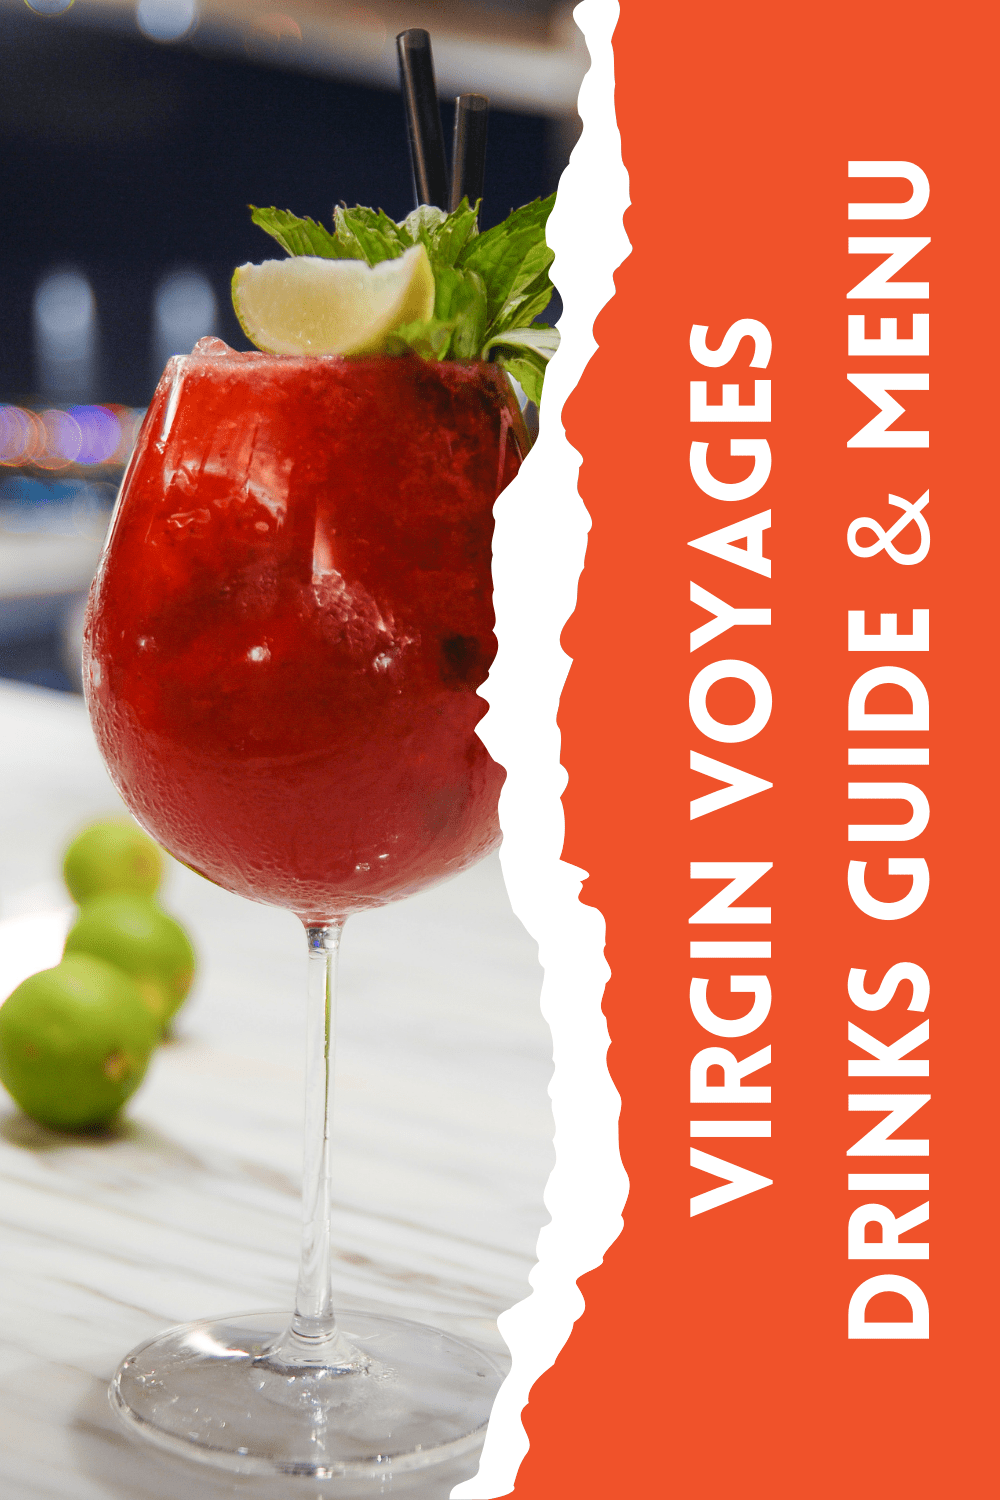 Virgin Voyages does not offer a drinks package so I've created a useful guide to Virgin Voyages drinks menus and prices to help you budget.